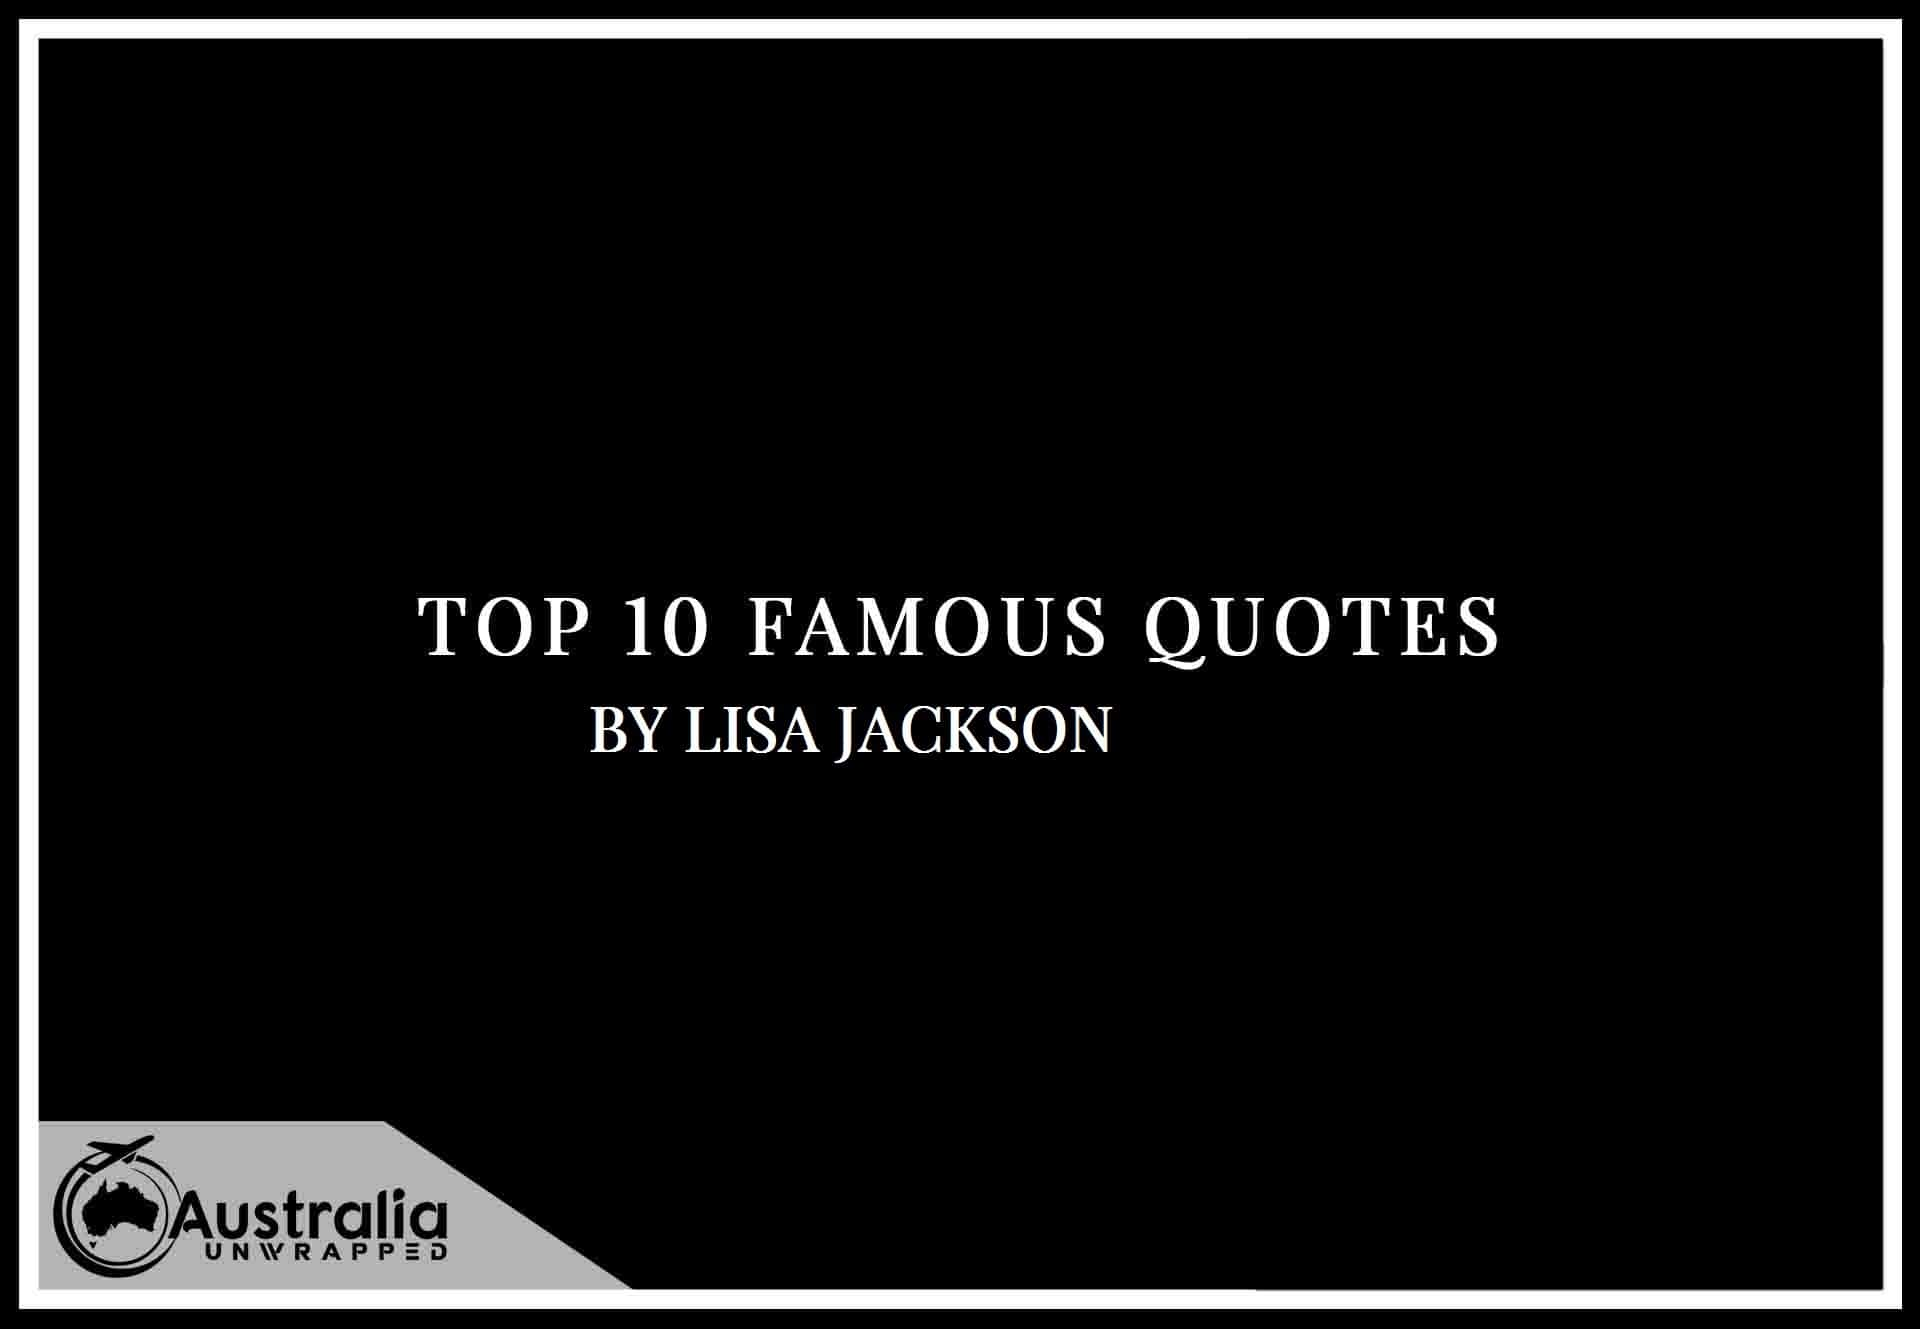 Lisa Jackson's Top 10 Popular and Famous Quotes